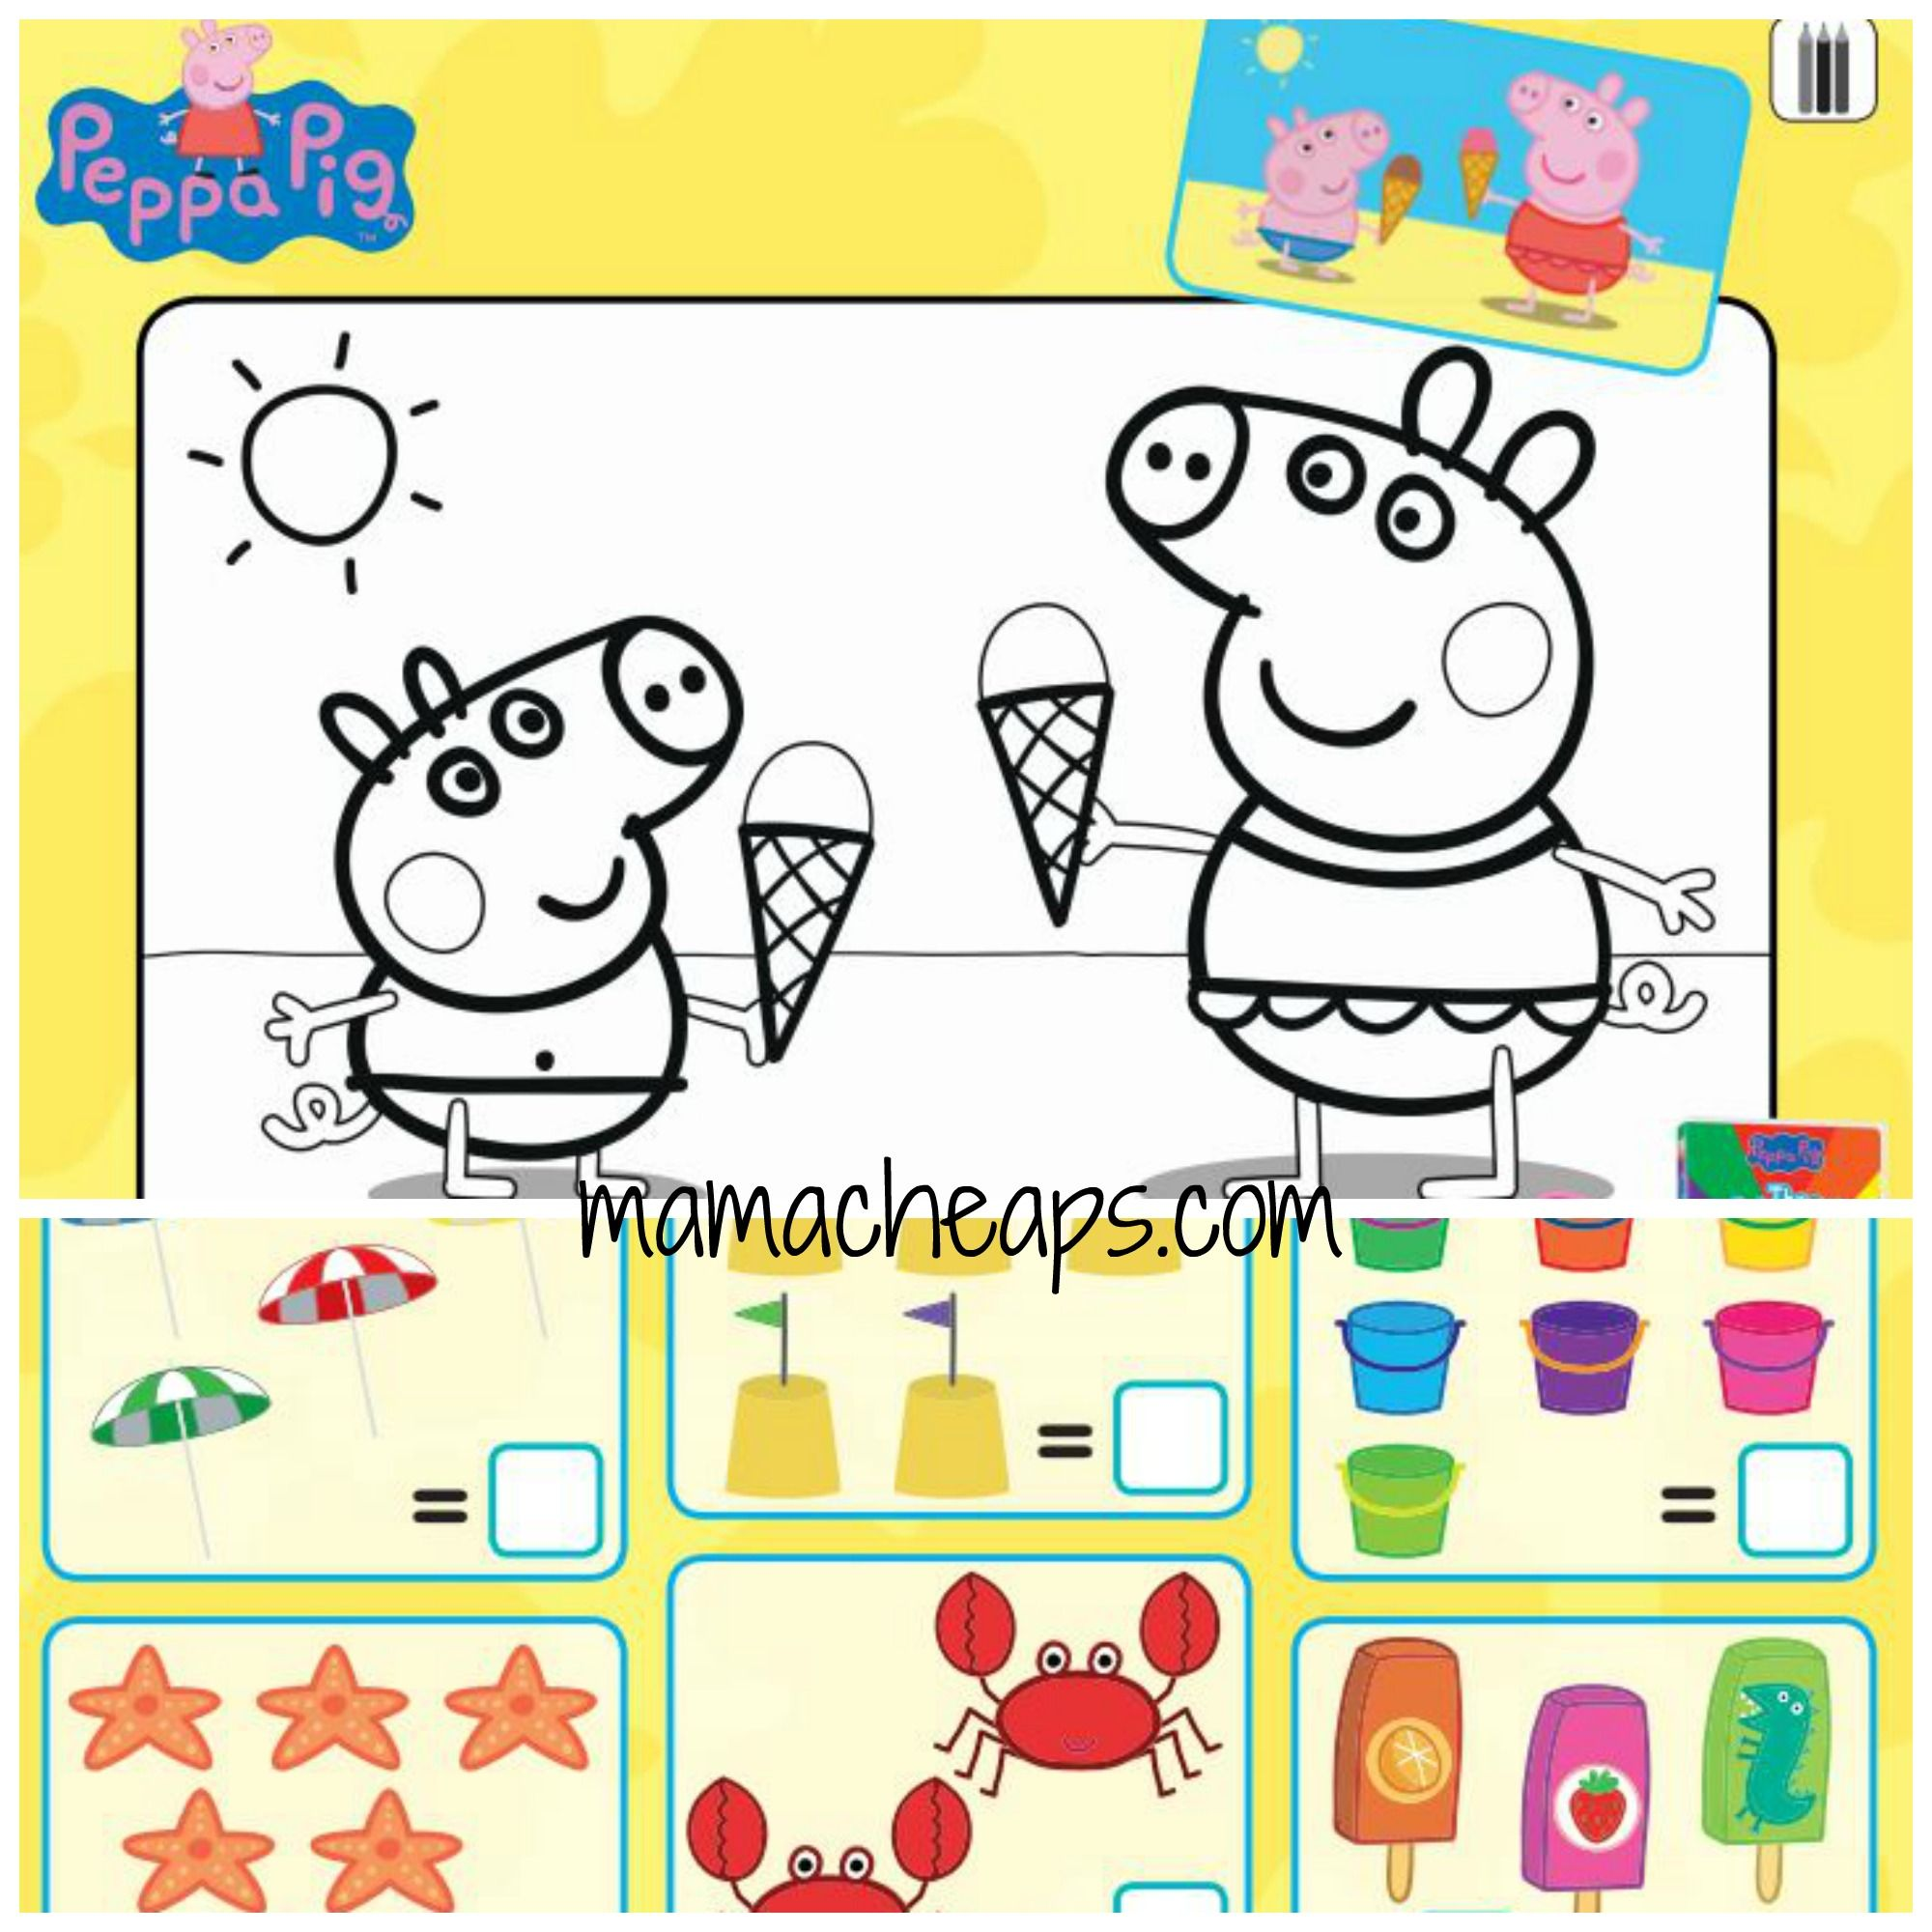 Colouring pages to print peppa pig - Image Result For Peppa Pig Free Printable Activities